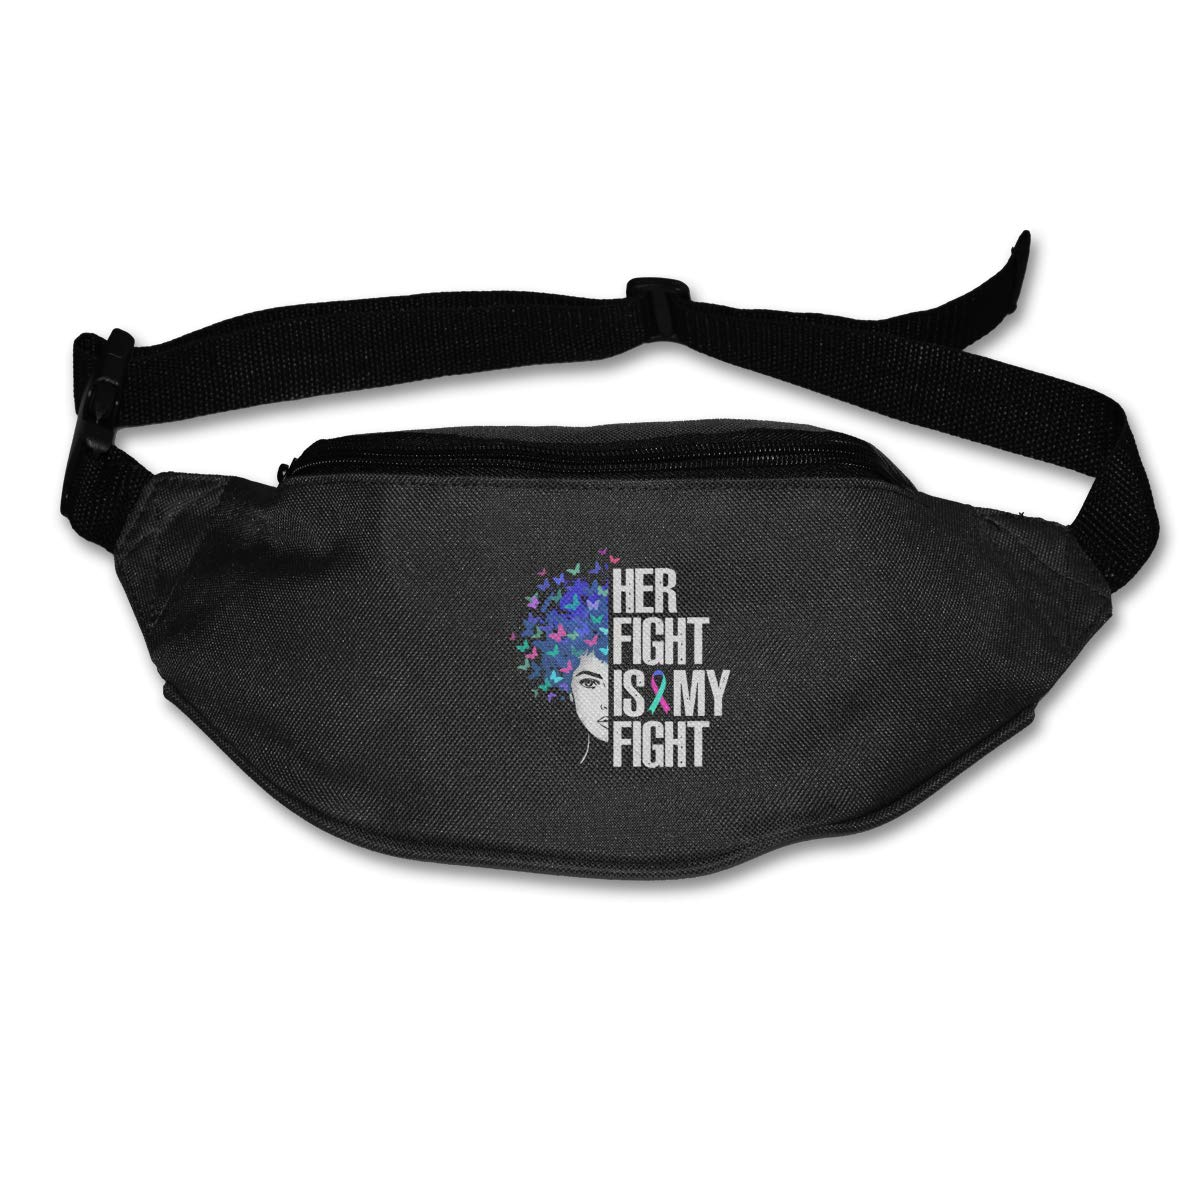 Her Fight Is My Fight Sport Waist Bag Fanny Pack Adjustable For Travel